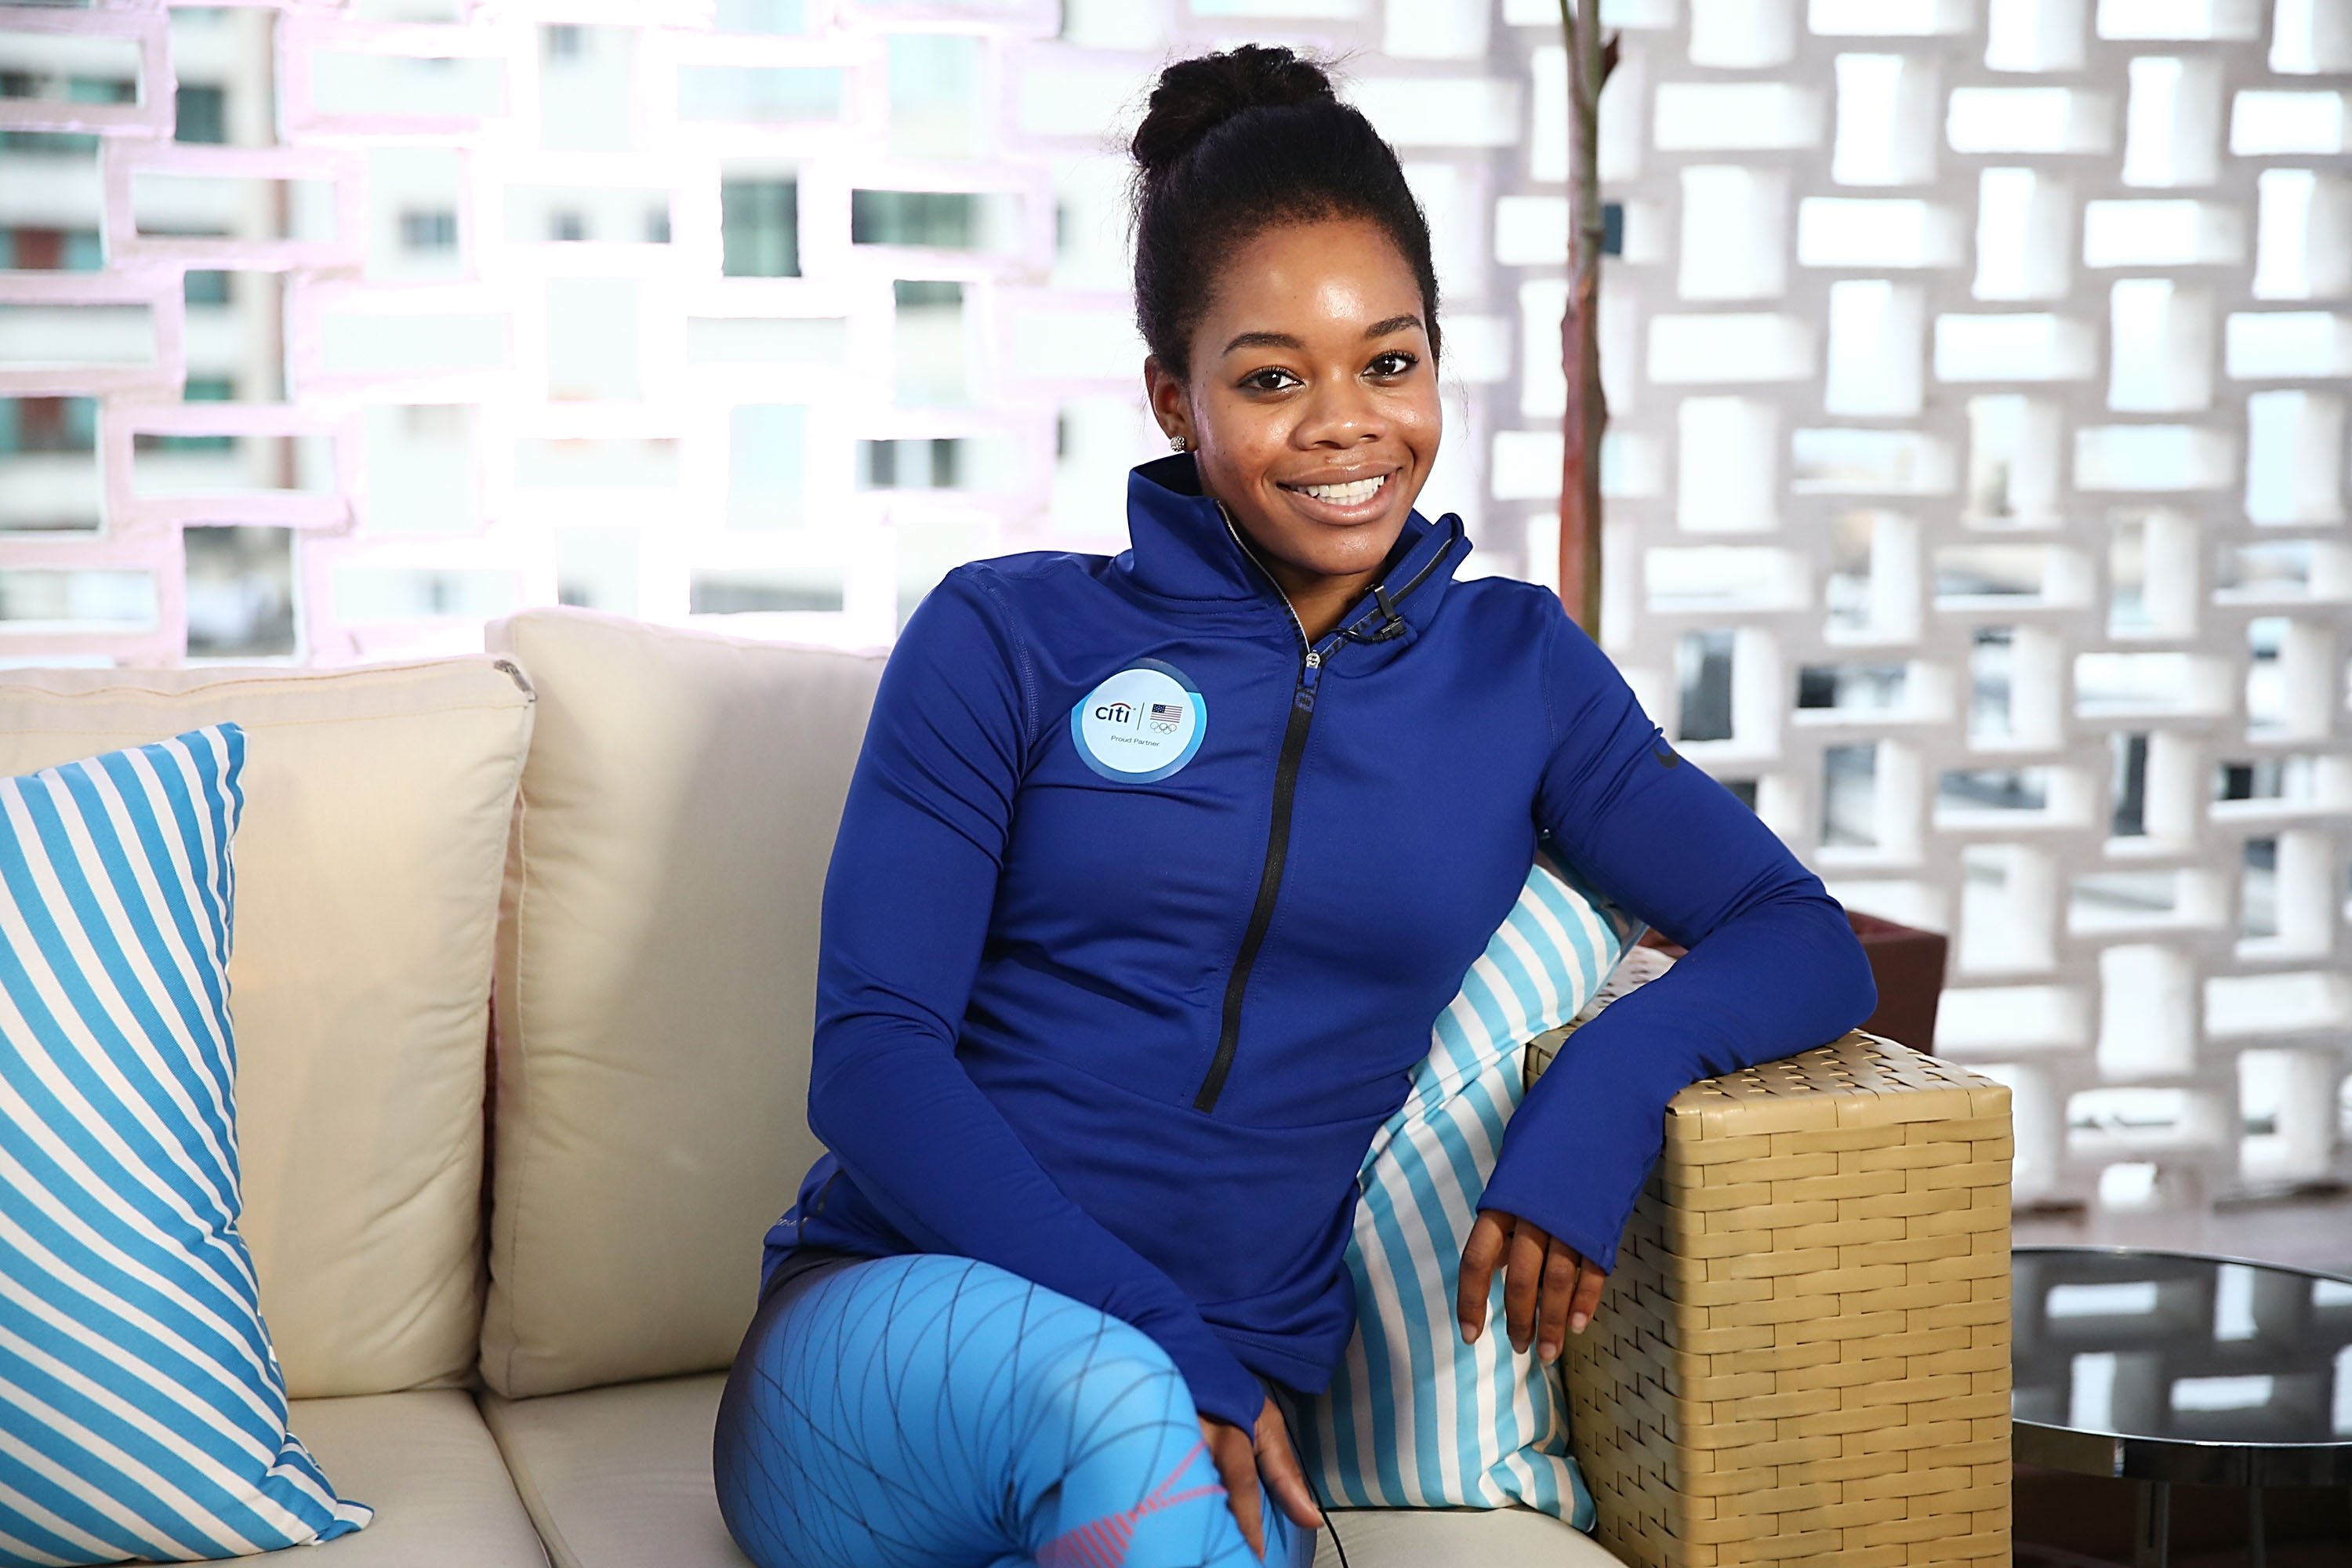 U.S. Olympian Gabby Douglas visits the Citi Terrace at the USA House at Colegio Sao Paulo on August 5, 2016 in Rio de Janeiro, Brazil